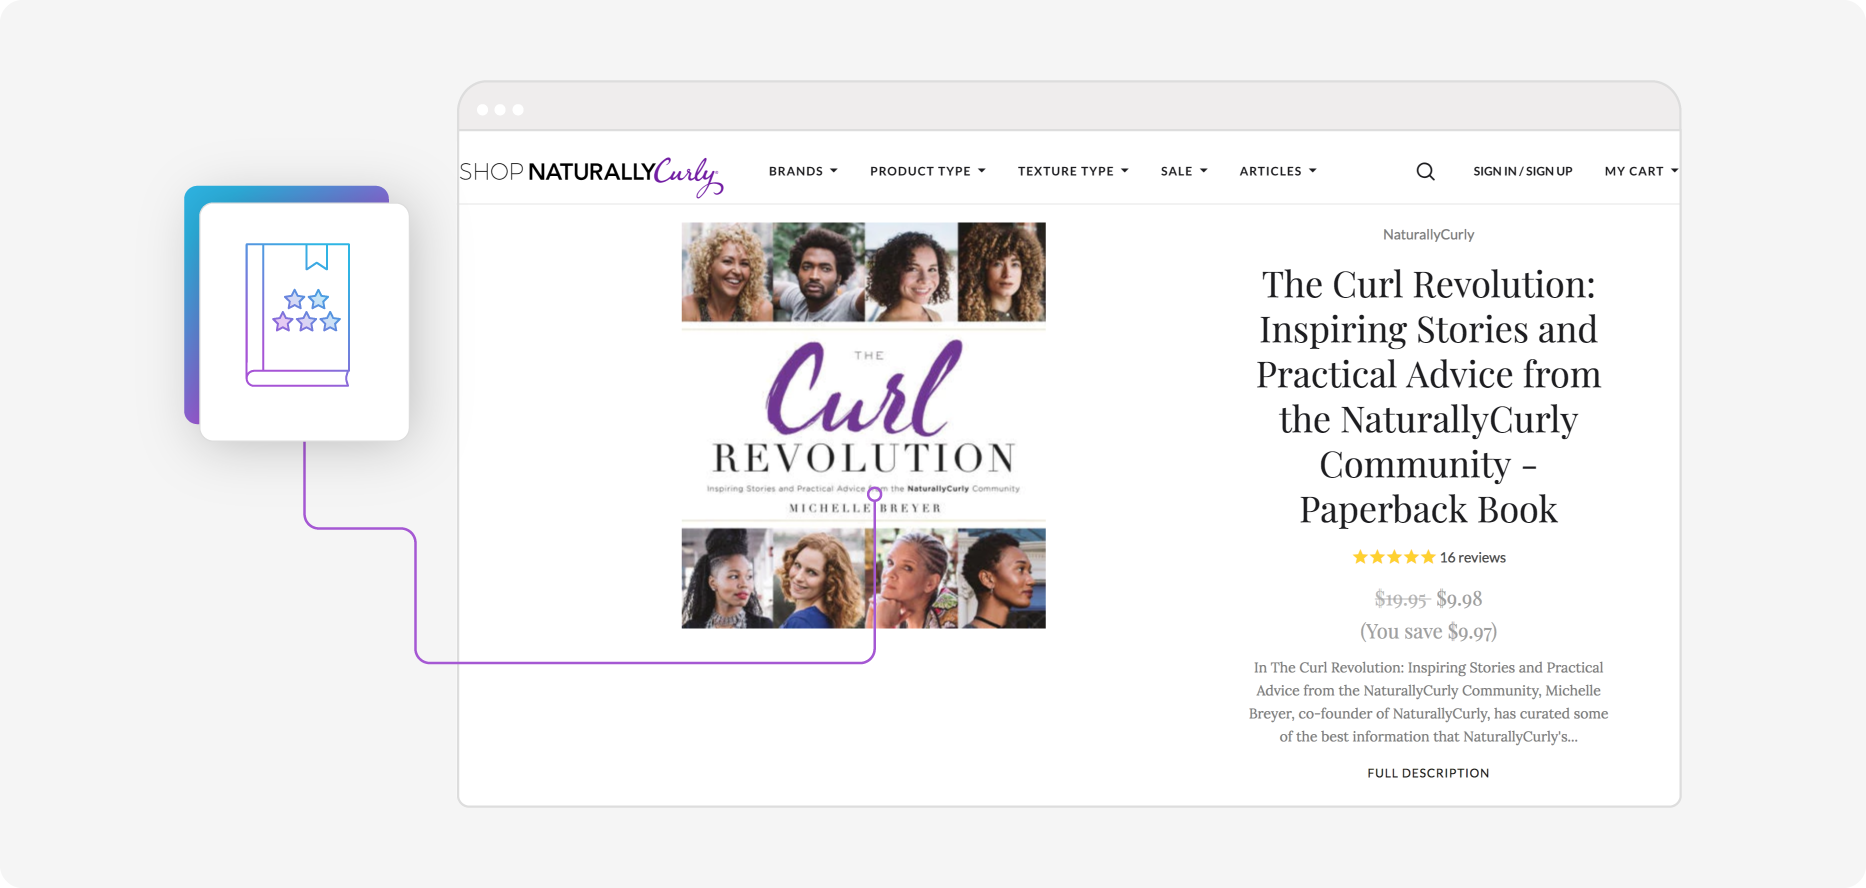 The Naturally Curly book, The Curl Revolution